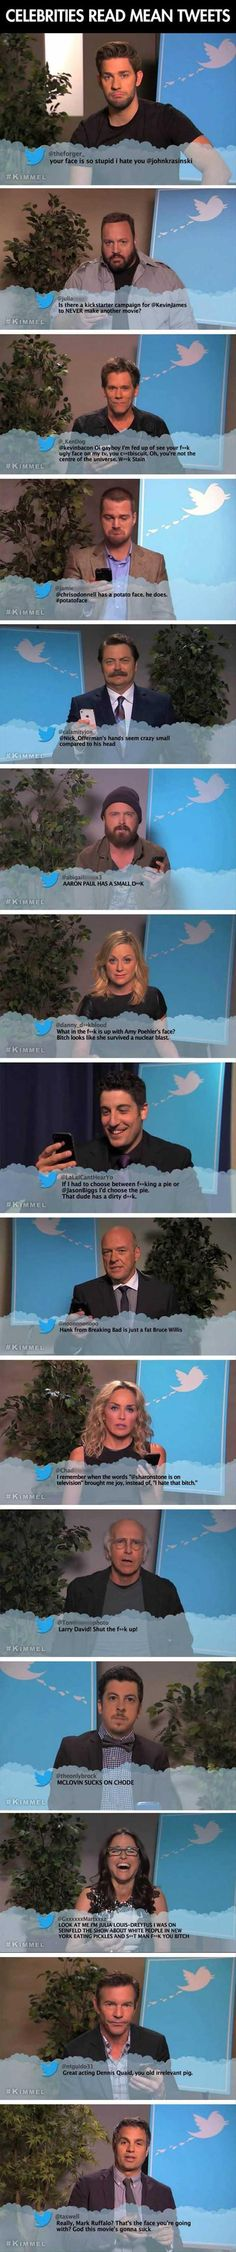 15 Celebrities Reading Mean Tweets Is Funnier Than It Sounds